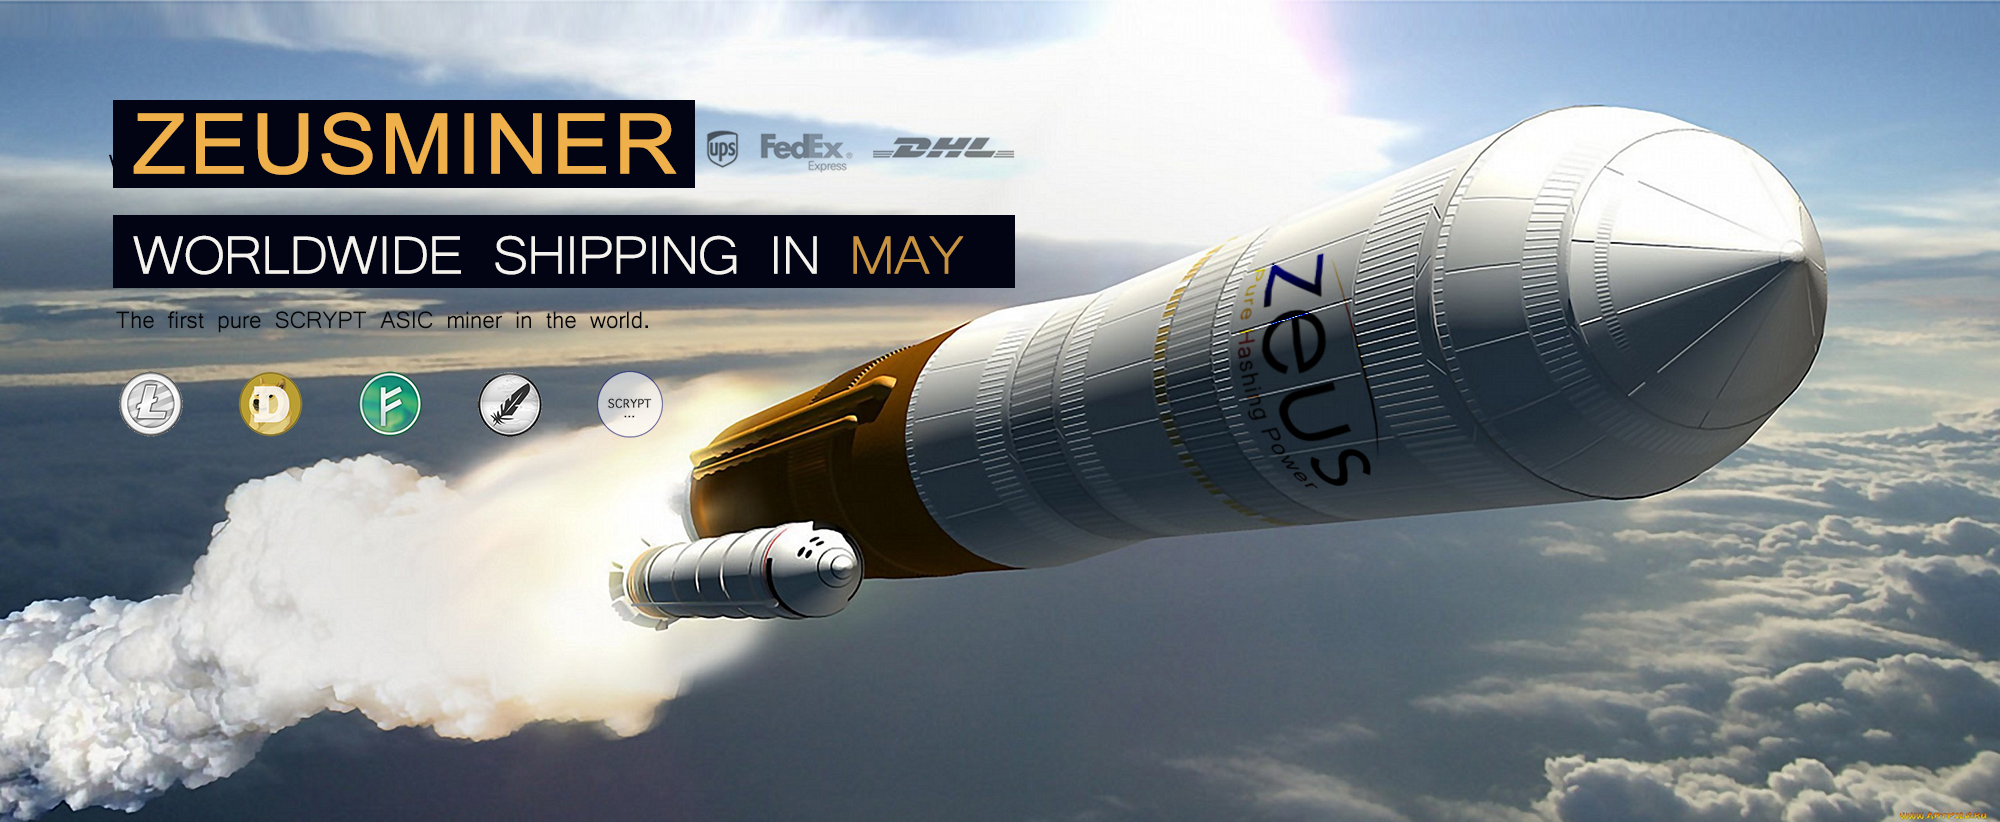 ZeusMiner Shipping May